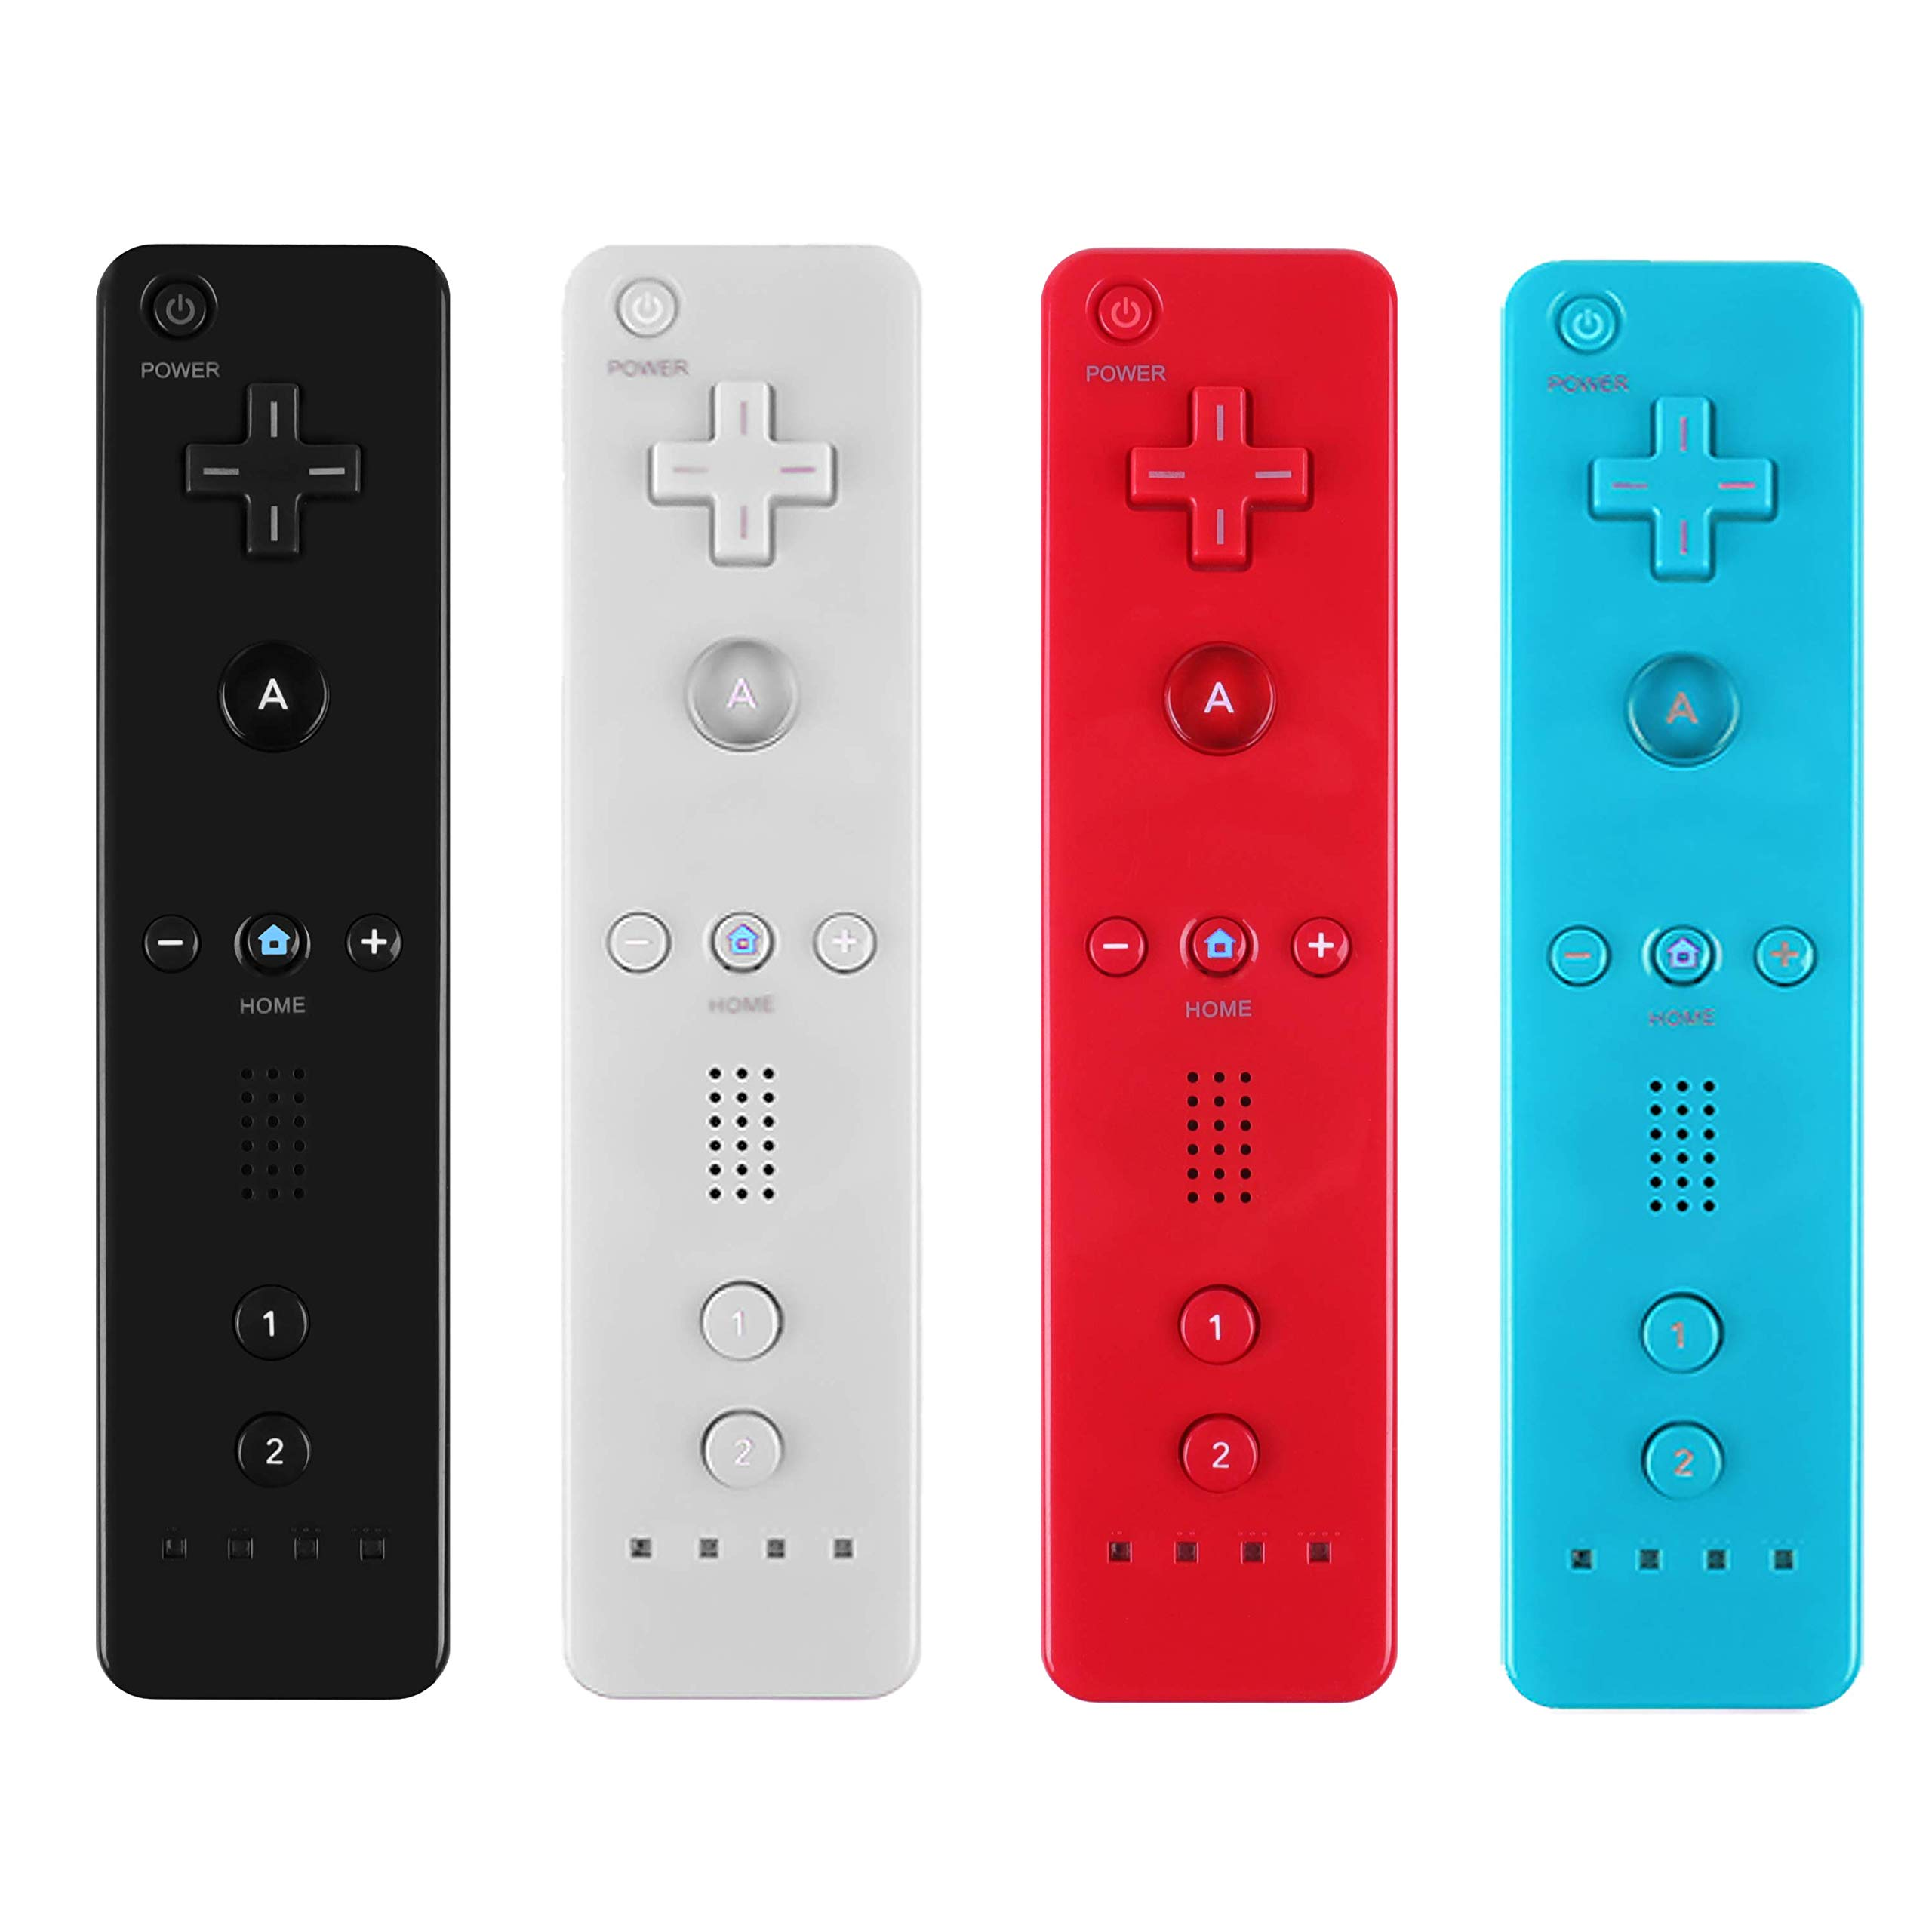 Yosikr Remote Wireless Controller Compatible for Nintendo wii/wii u Console - with Silicone Case and Wrist Strap (4 Pack White+Black+Blue+Red)